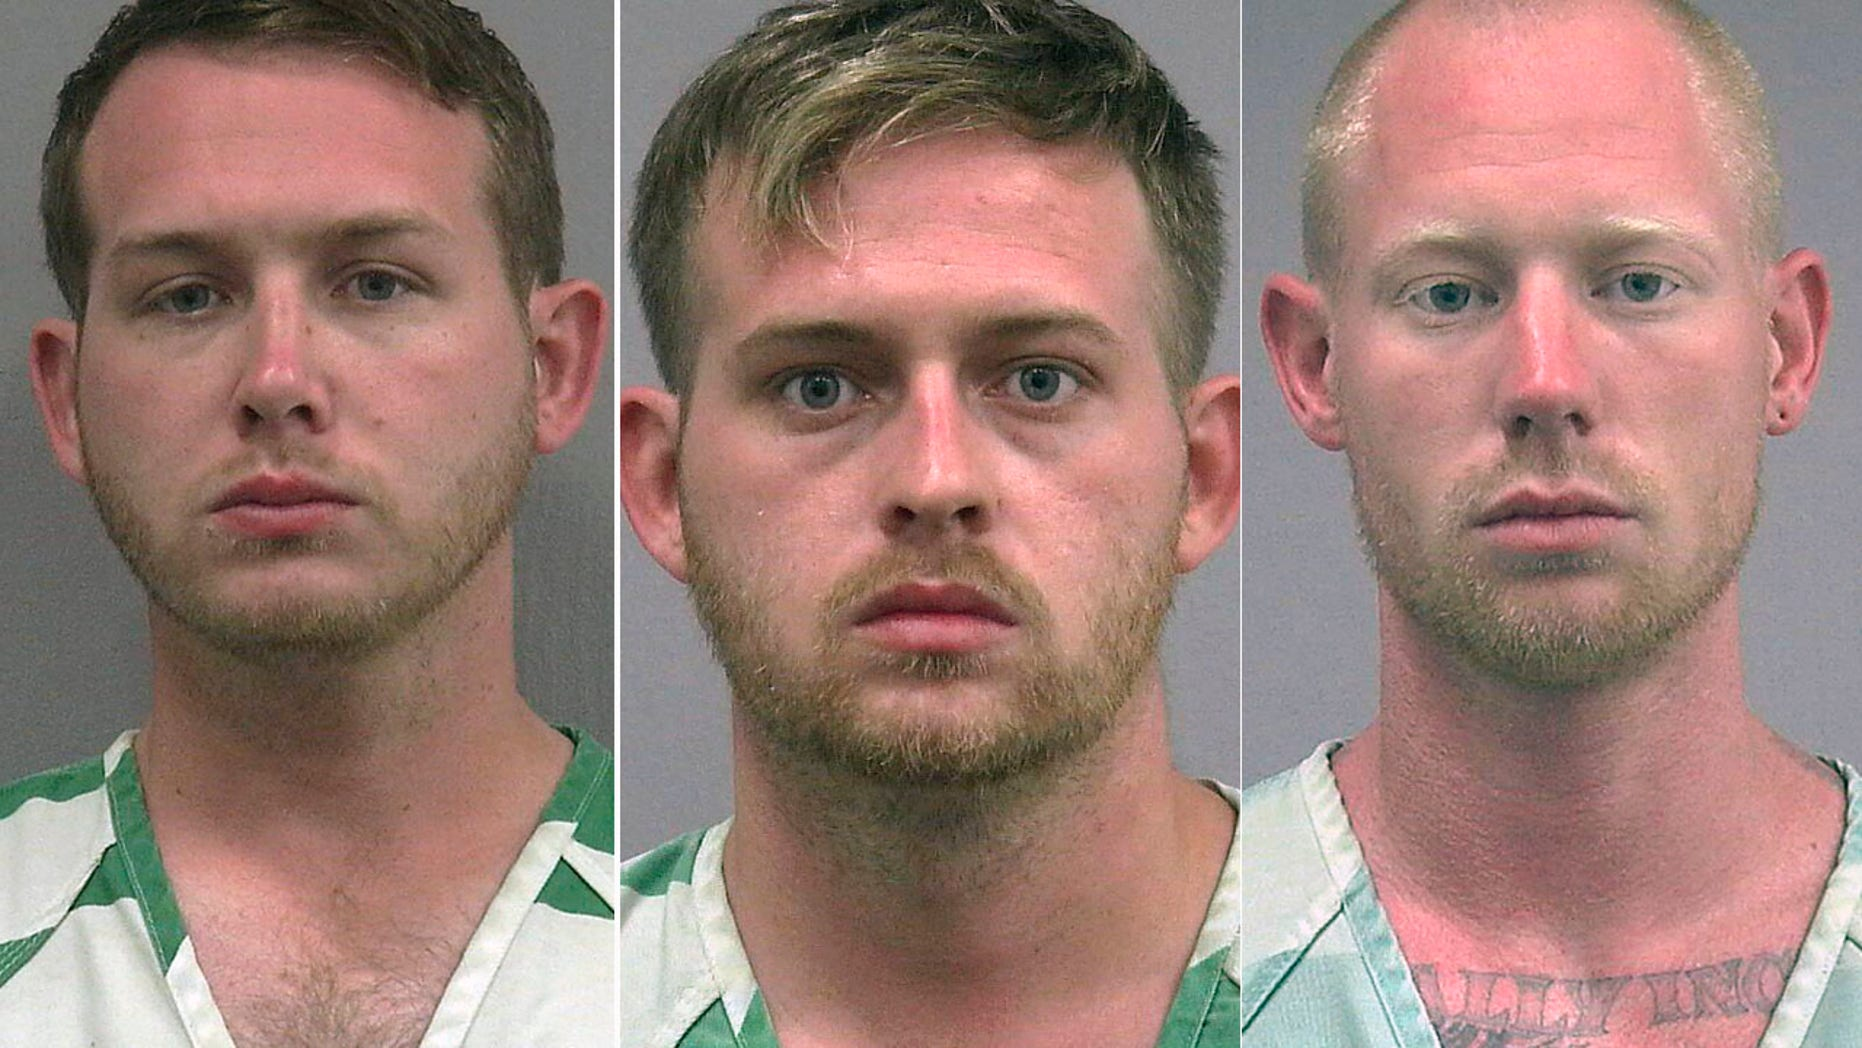 Investigators say Tyler Tenbrink, right, fired at protesters outside Thursday's Richard Spencer speech with the encouragement of William Fears, left, and brother Colton Fears, center.